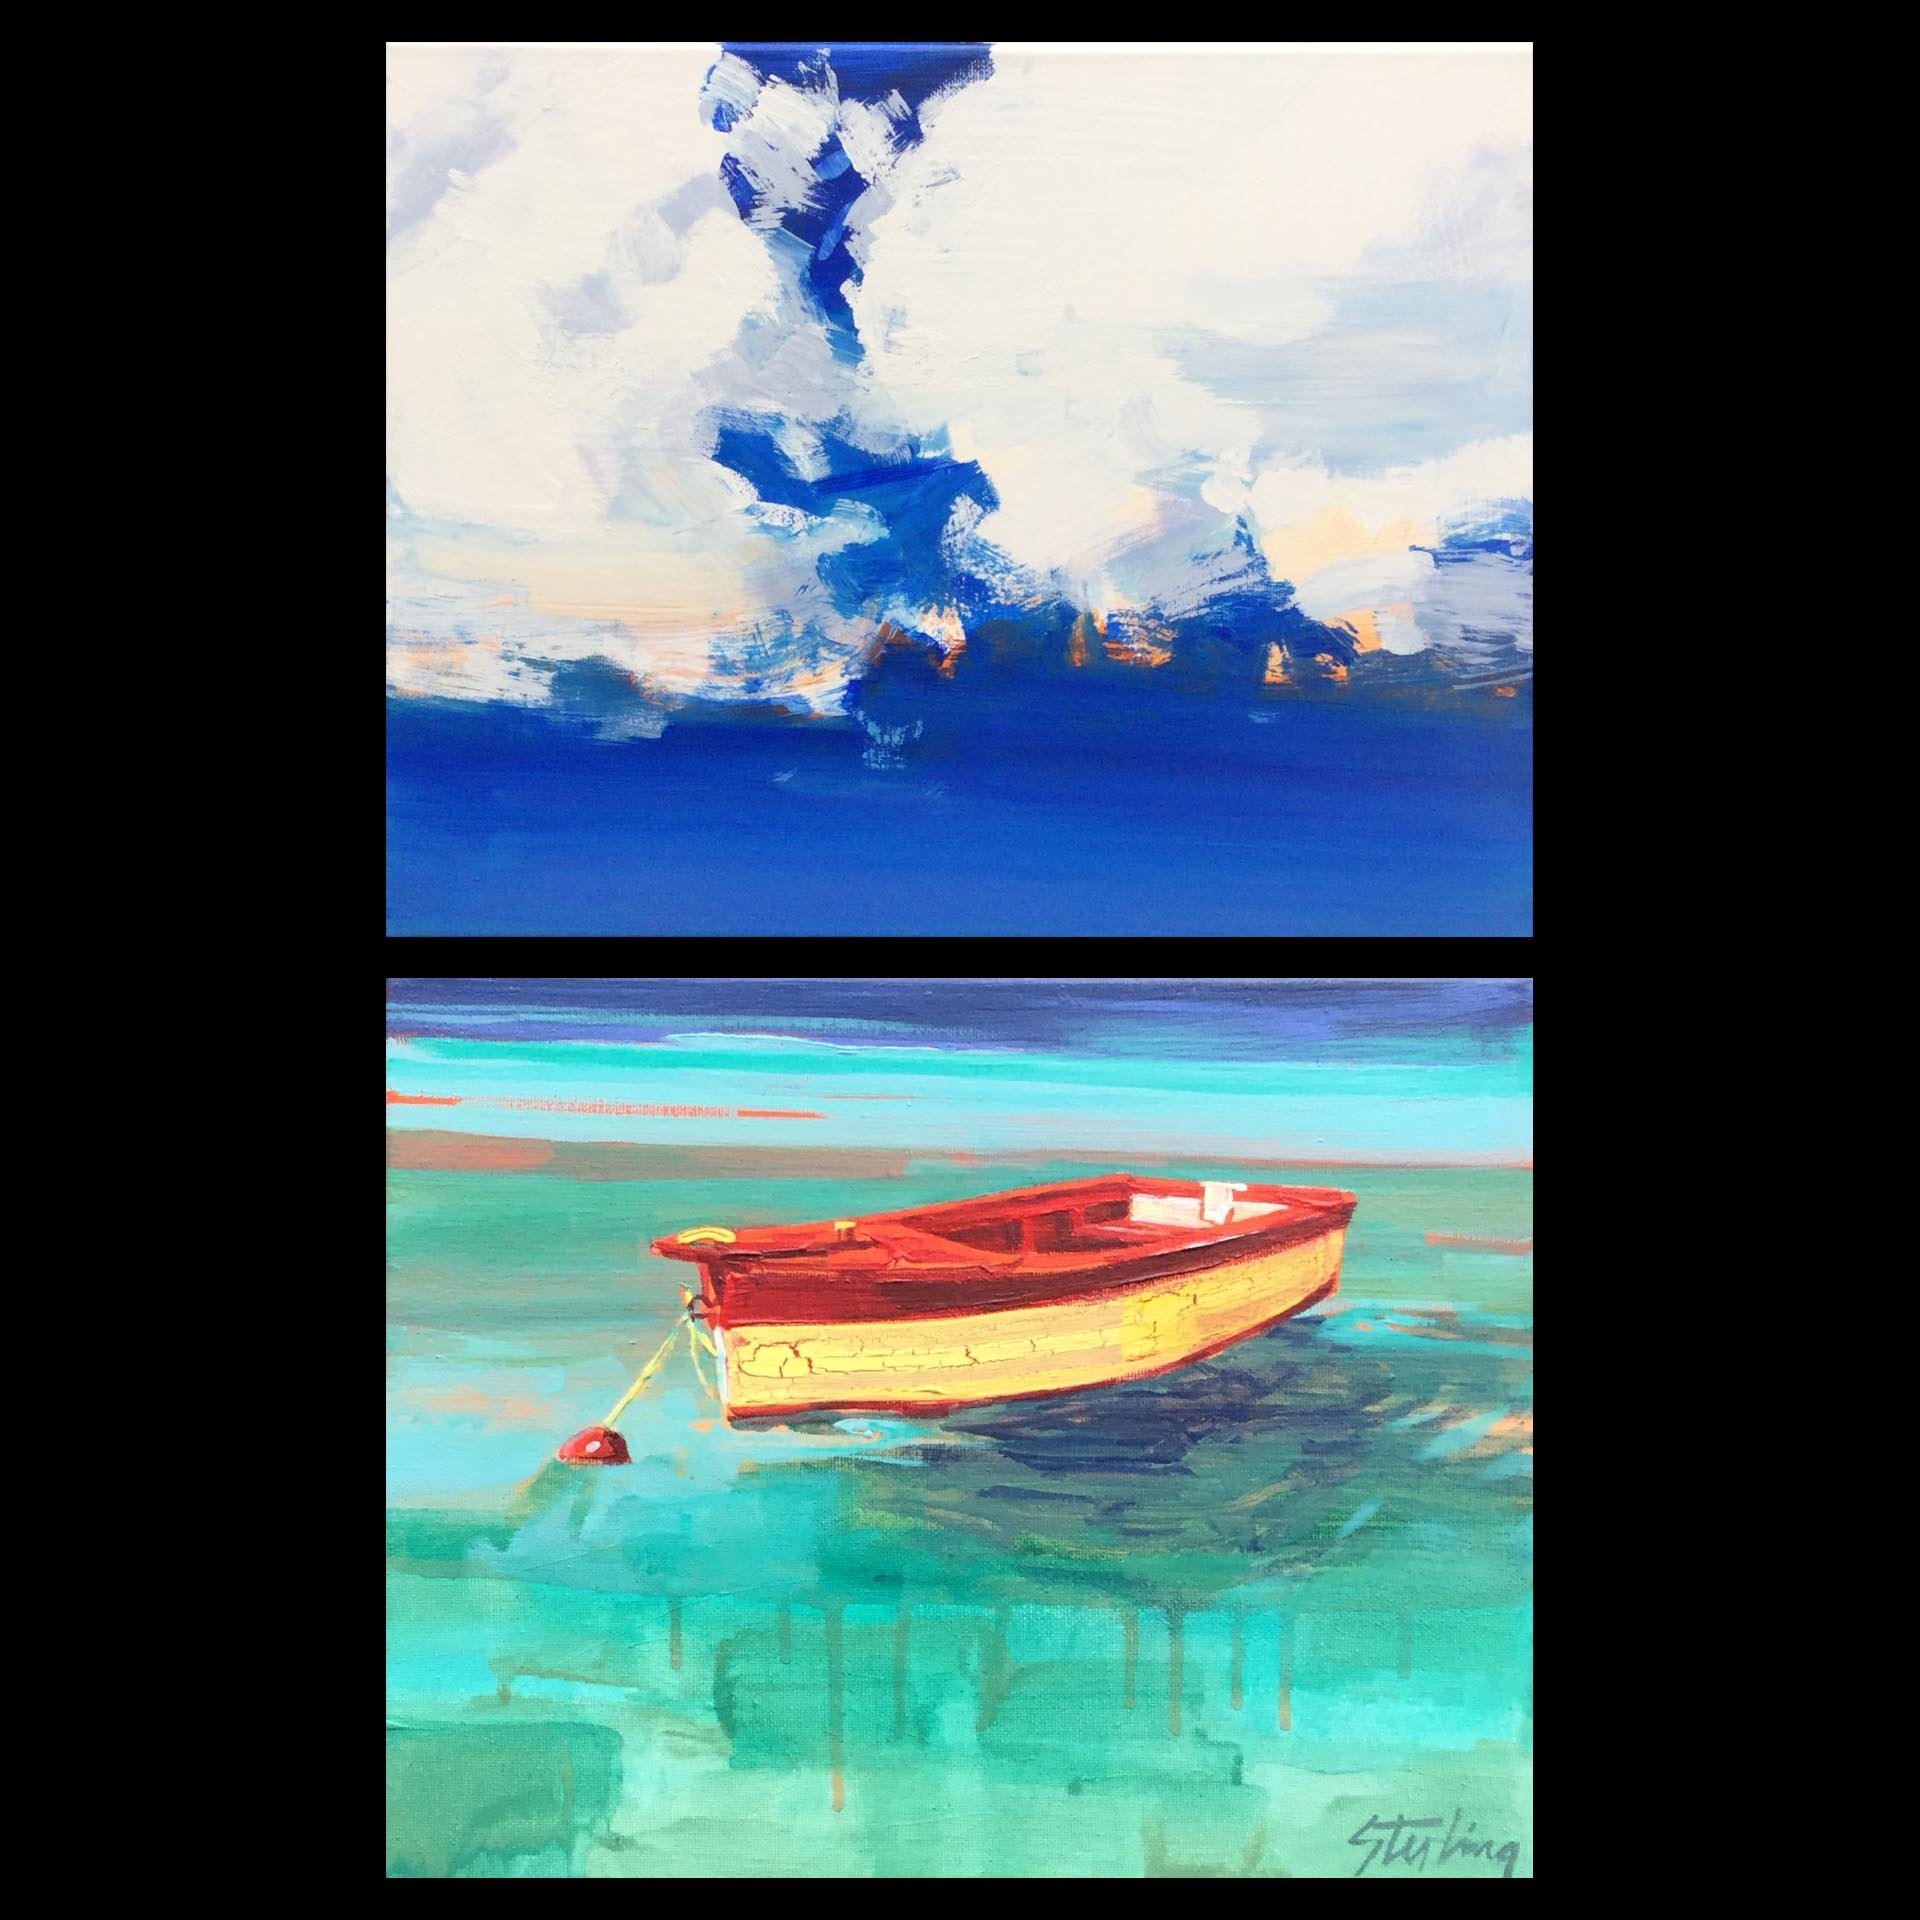 Lost Horizon 22x14 diptych acrylic on canvas